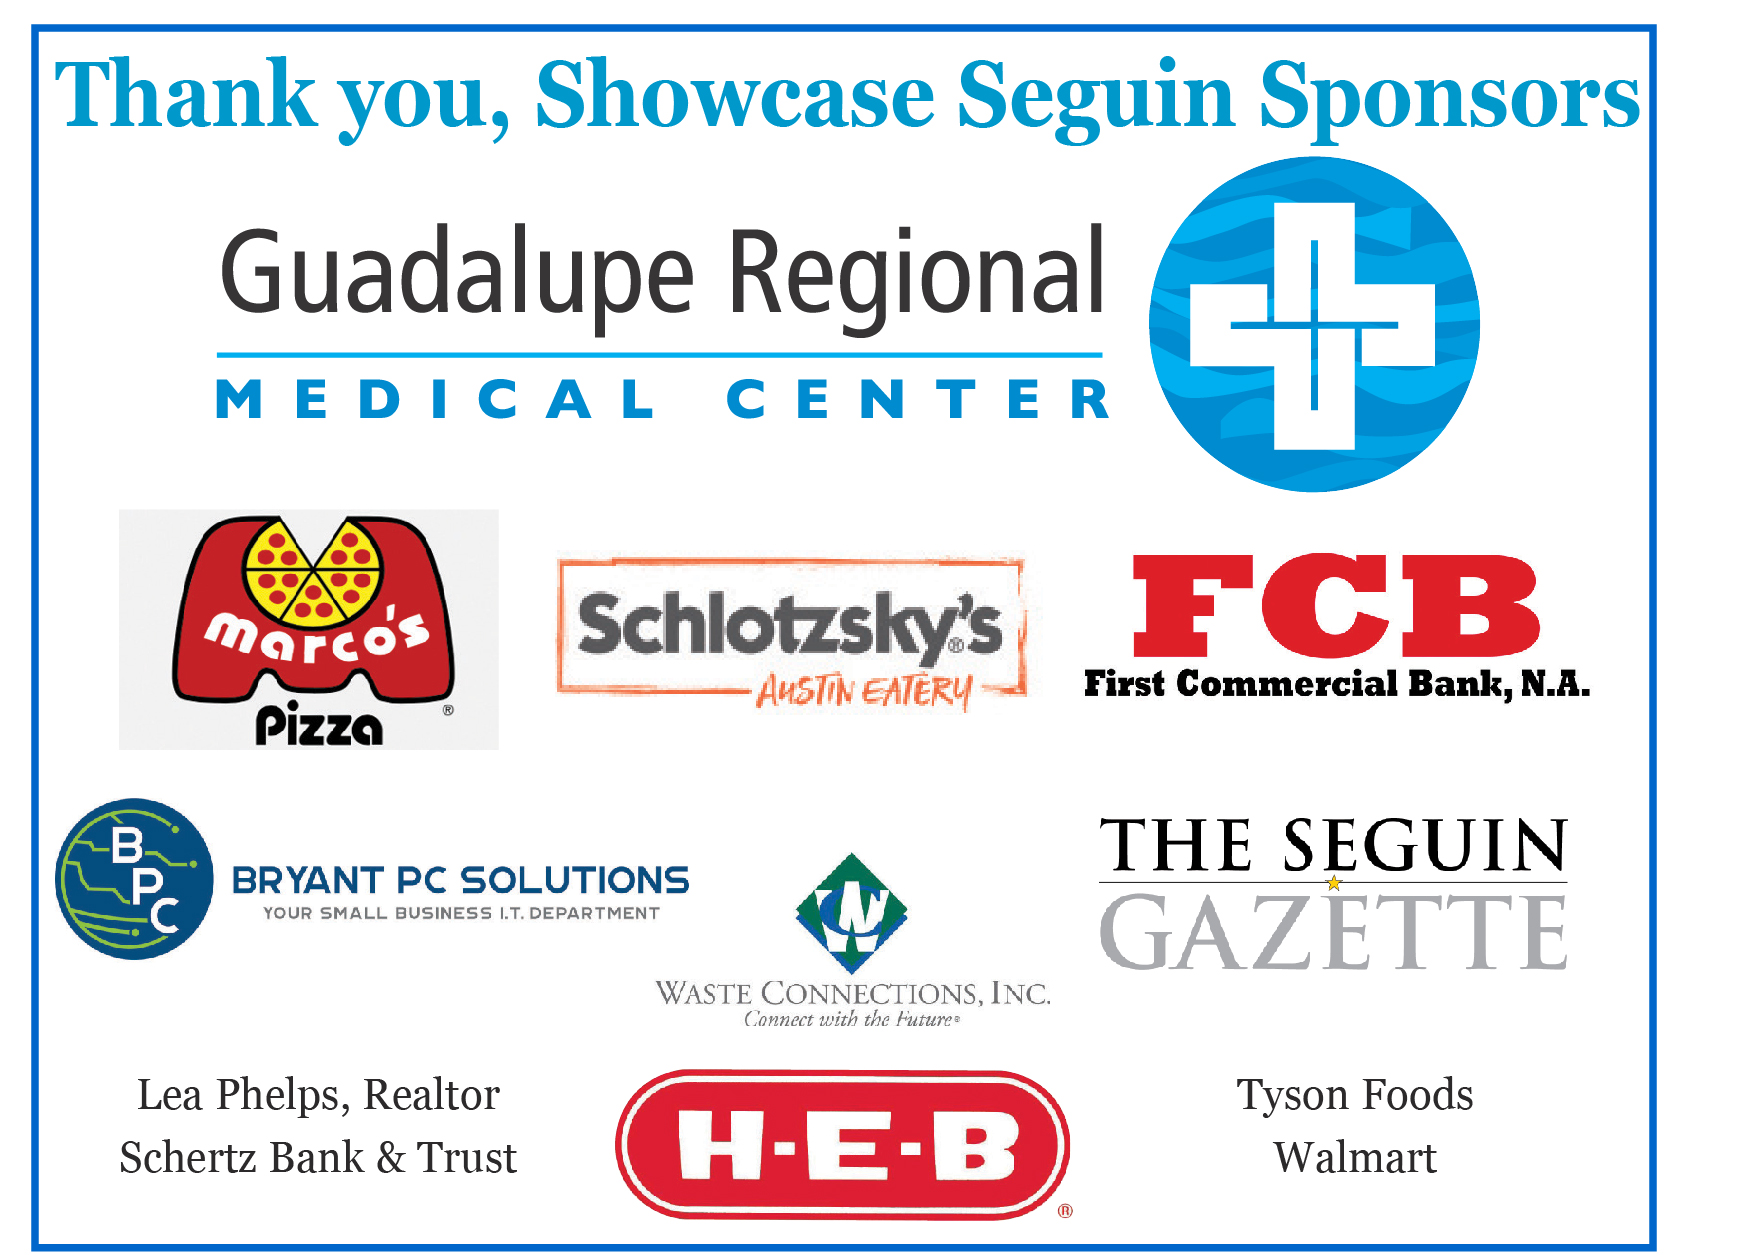 Showcase sponsorships